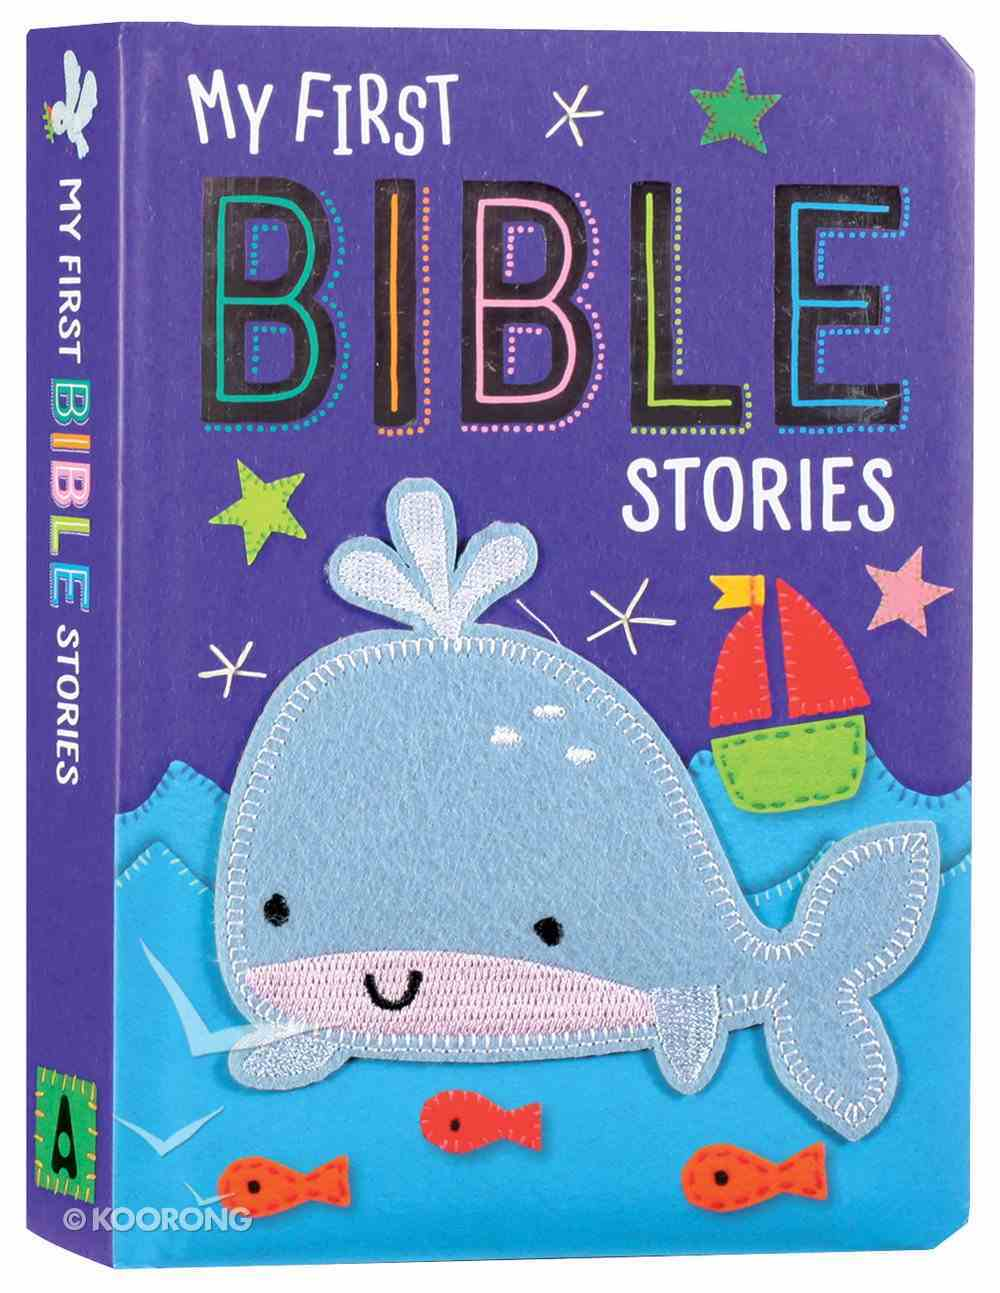 My First Bible Stories (Inspirational Board Books Series) Padded Board Book